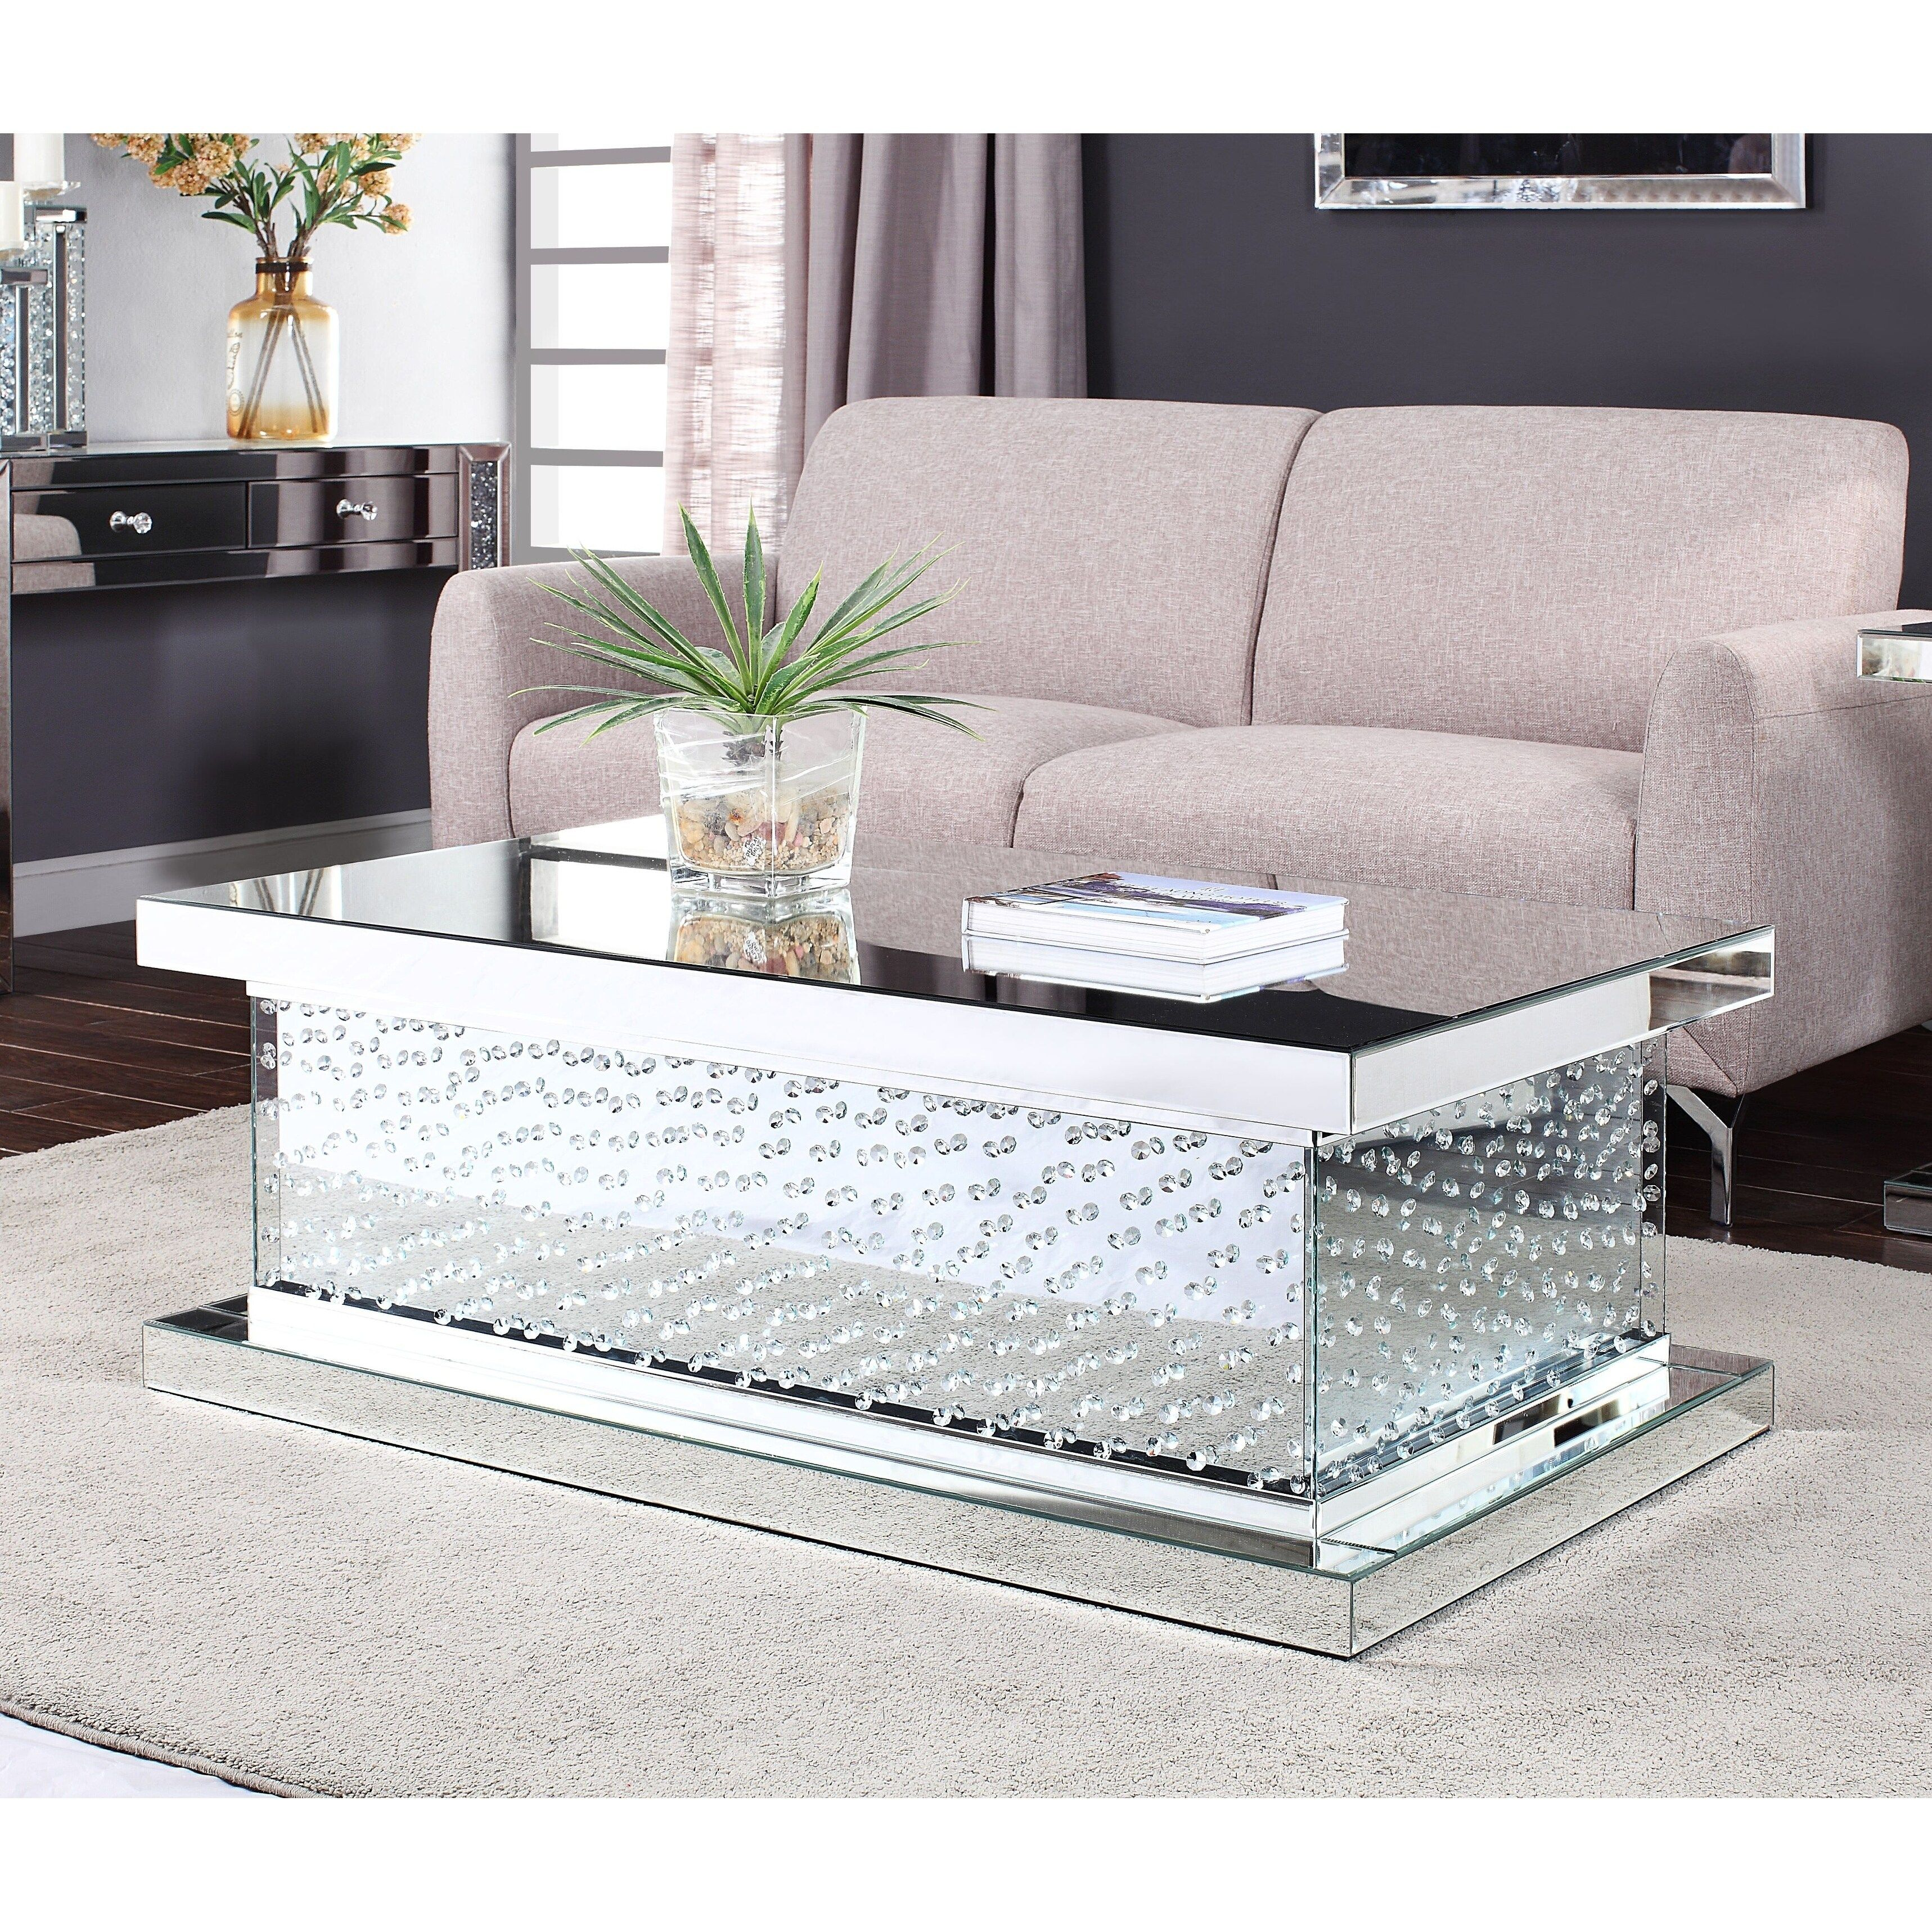 Floating Crystals Mirrored Coffee Table Decorated With Glass Crystals Thisbbeautiful Item Is Made Contemporary Console Table Contemporary Console Coffee Table [ 1500 x 1125 Pixel ]